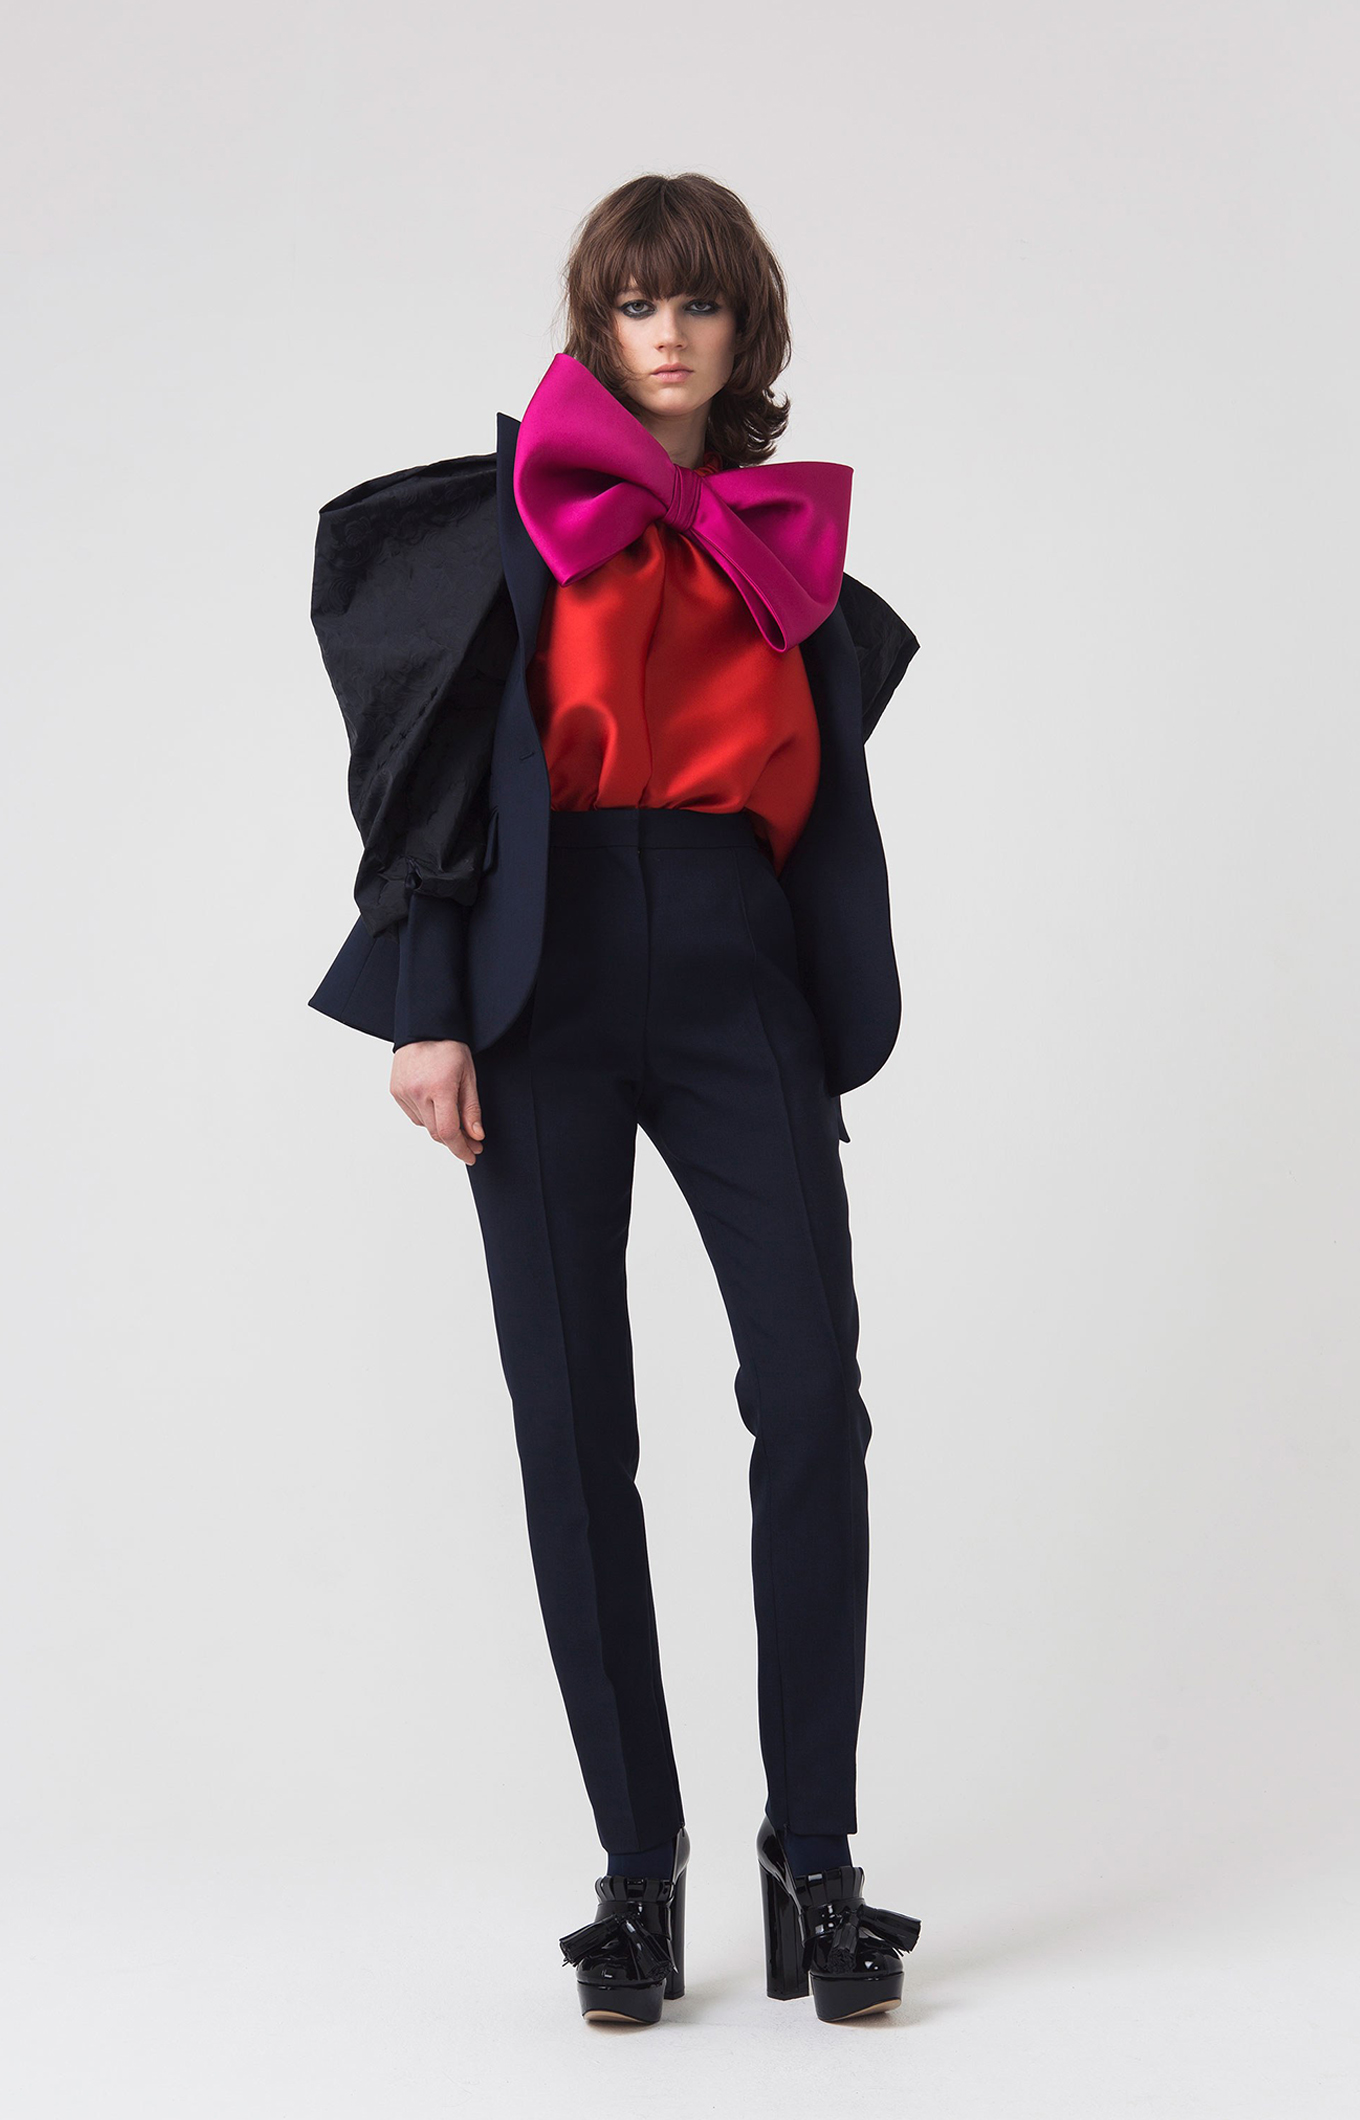 Dice Kayek<br>Fall 2018 <br>Look 01